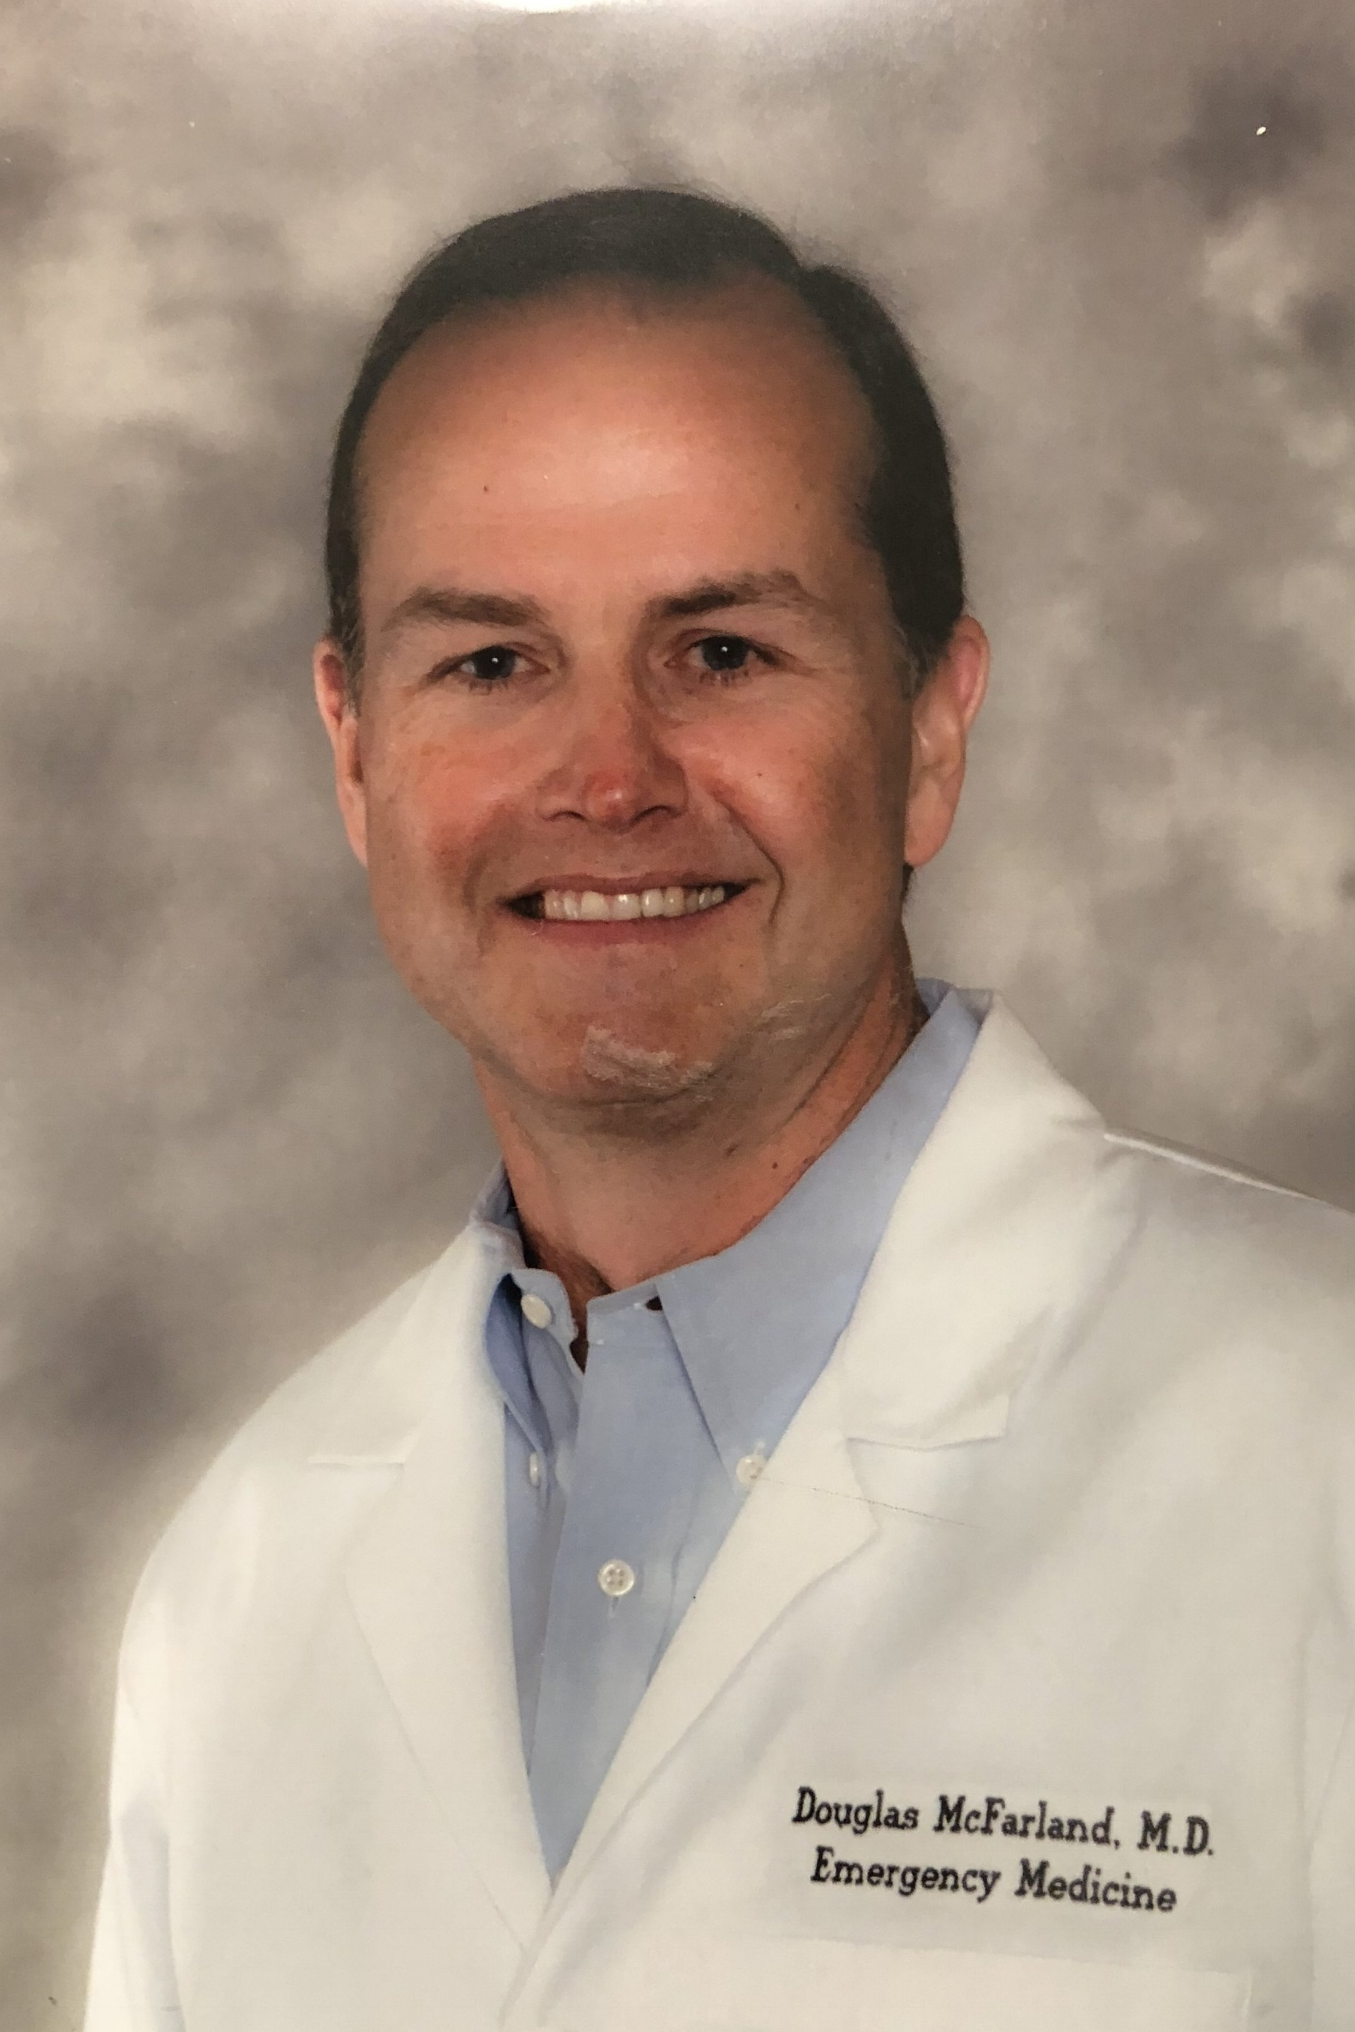 Douglas McFarland, MD - Medical School: UCLA School of MedicineResidency: Harbor UCLA Medical CenterYear Joined: 1996Career Highlights: Dept. Chair, Chief of StaffSpecial Interests: Backpacking, Water & Snow skiing, Paddle surfing